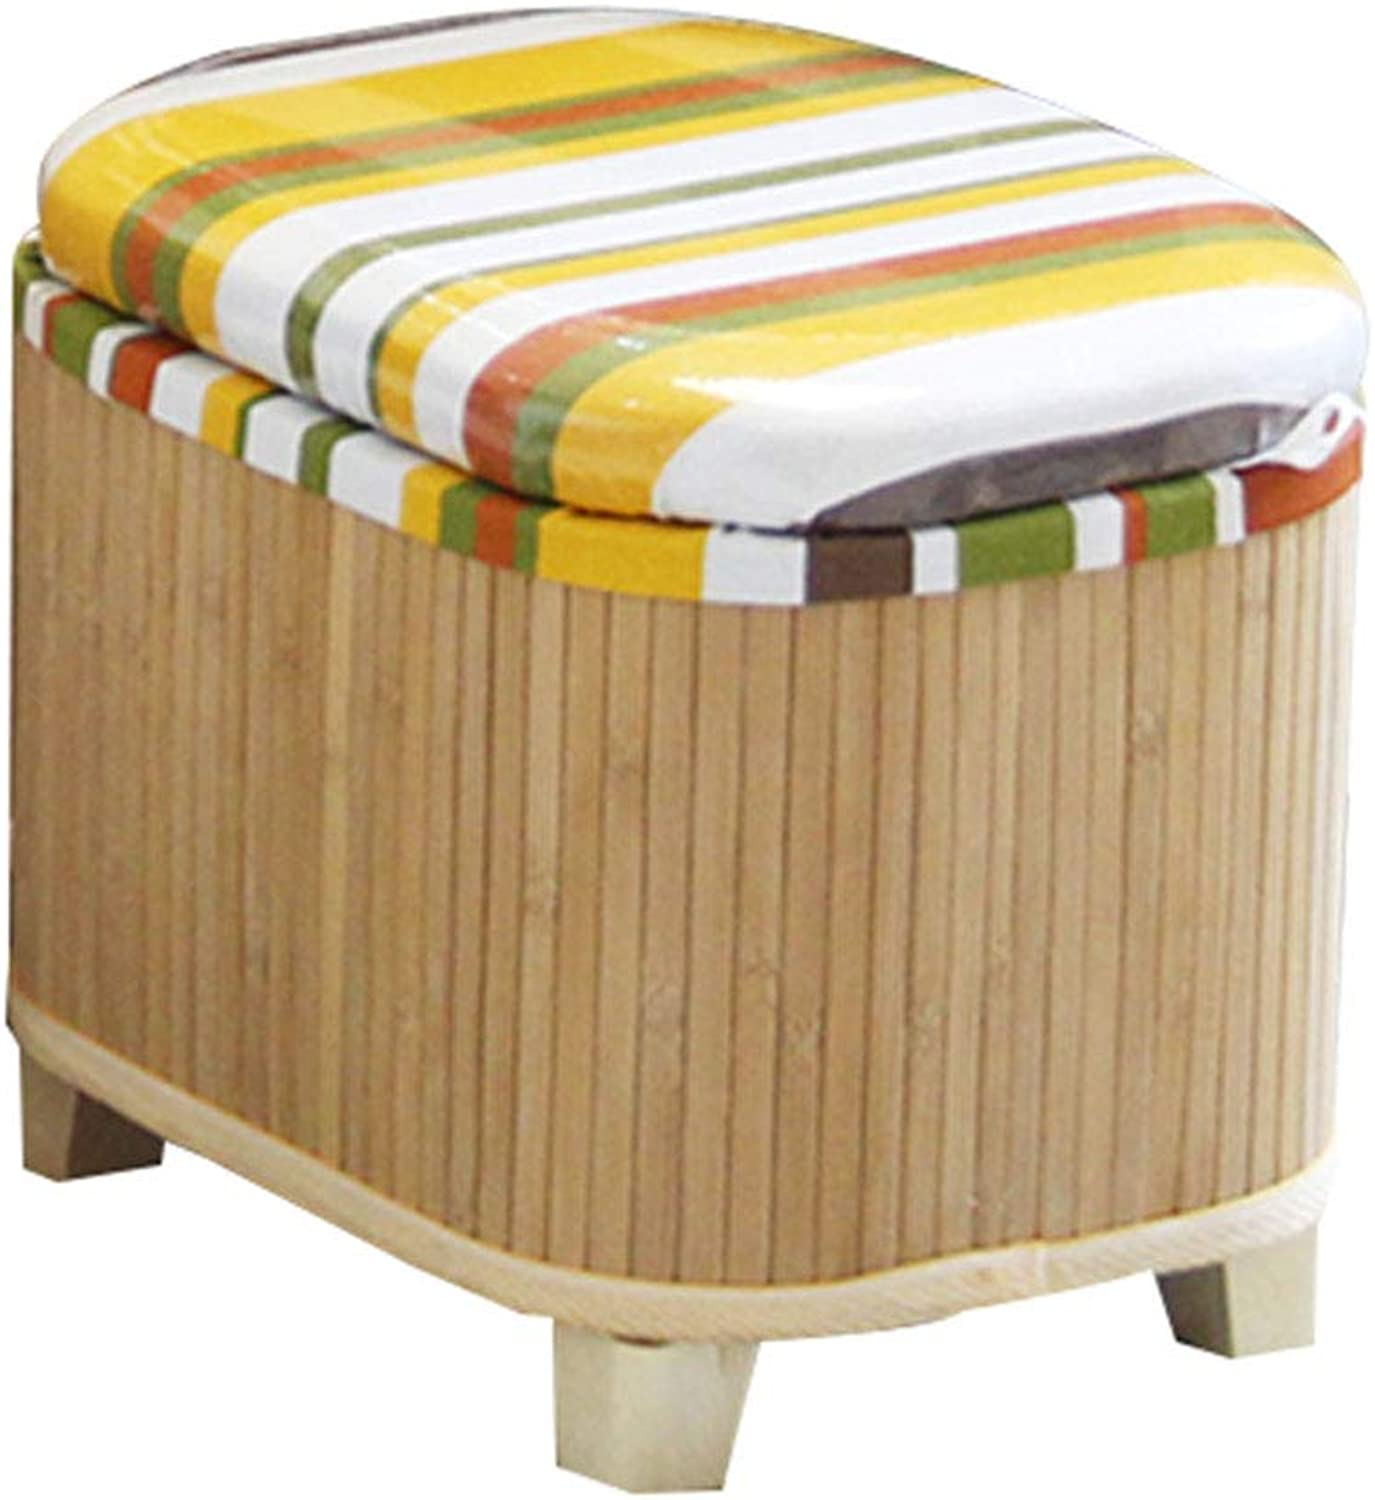 CAIJUN Footstool Household Multifunction Bamboo Frame Washable Storage Whole Outfit Non-Slip, 4 colors, 2 Sizes (color   Wood color, Size   31x25x27cm)